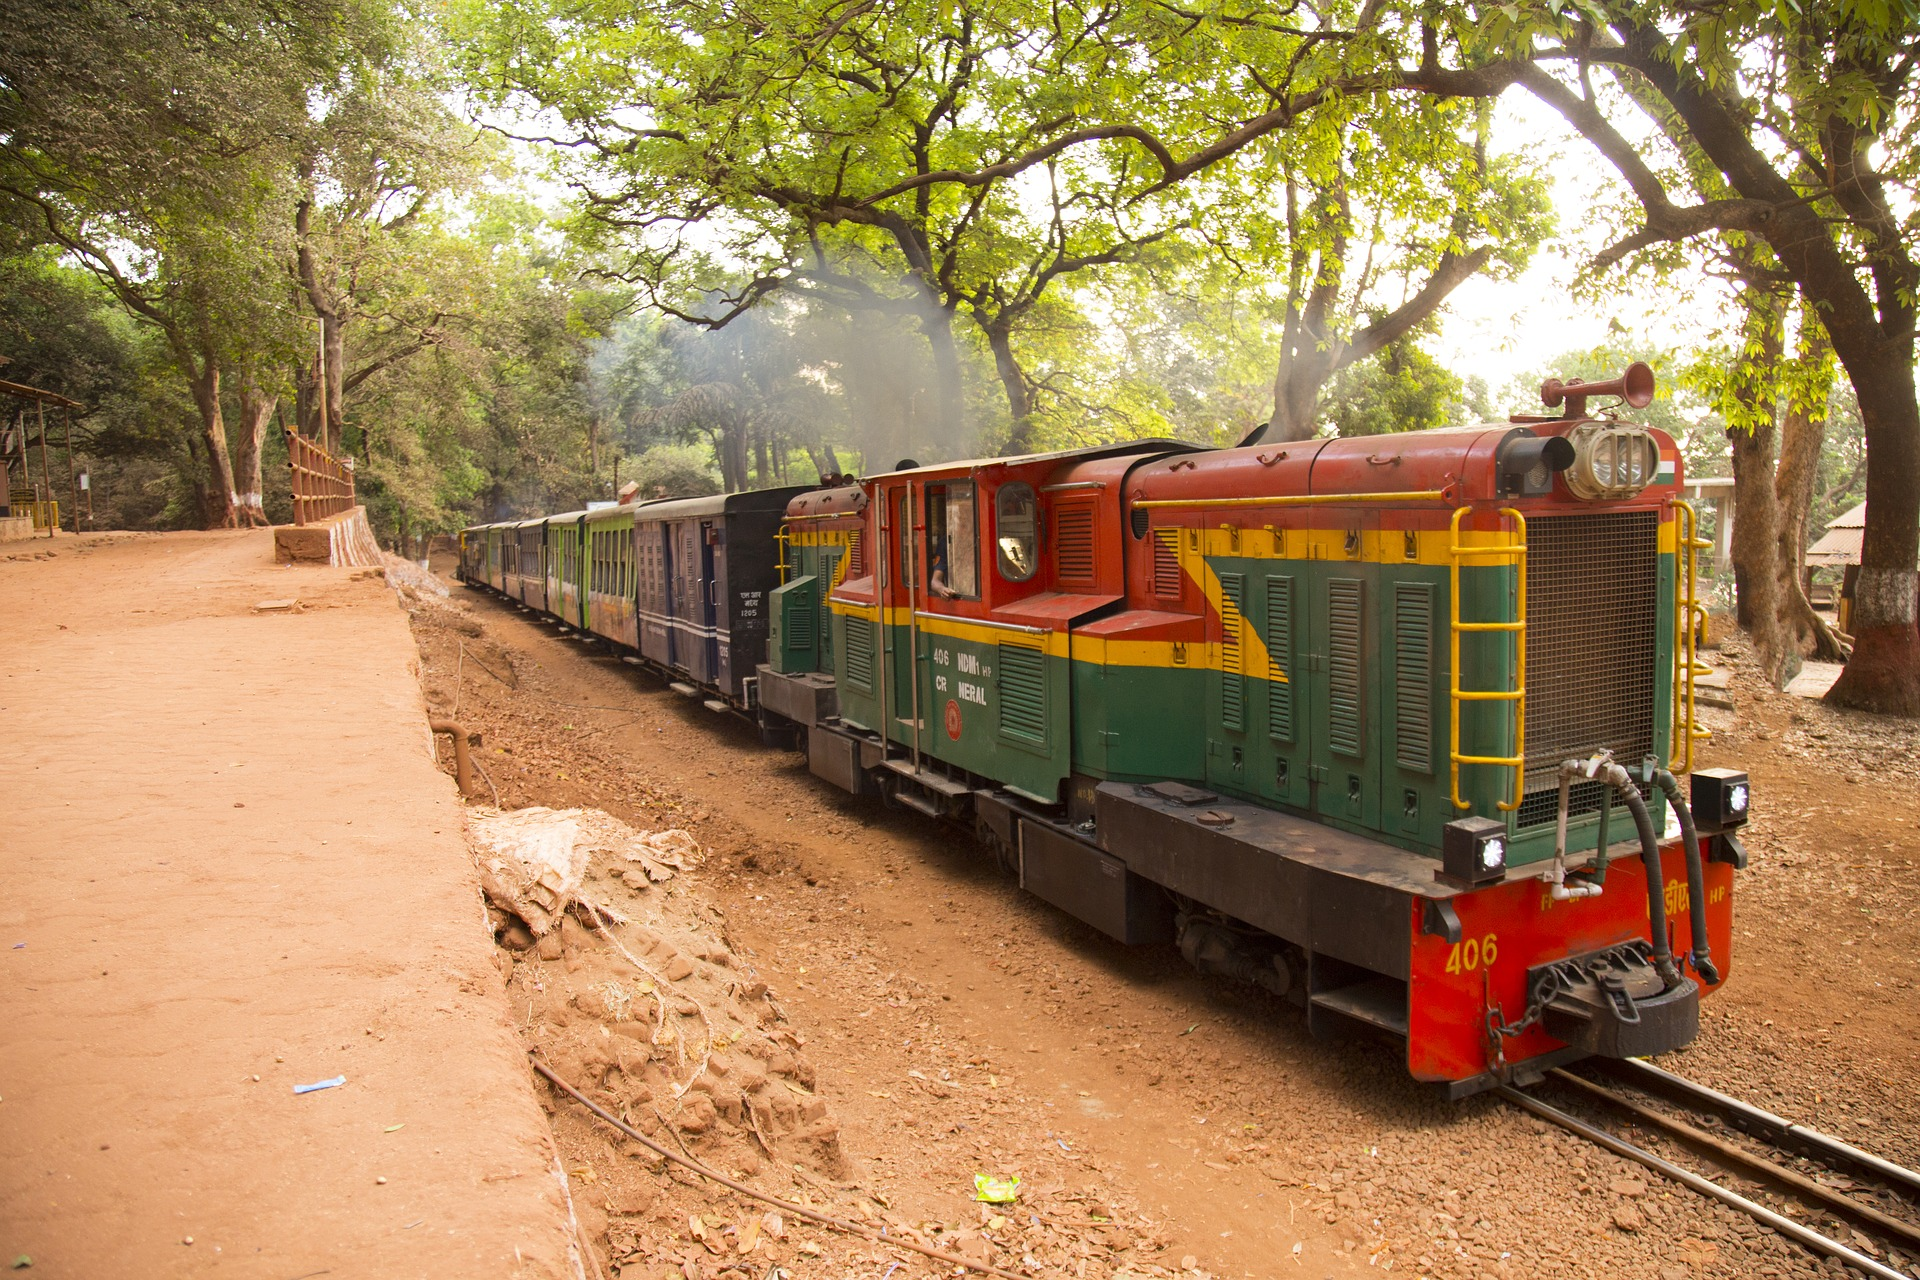 You can ride into Matheran by train.